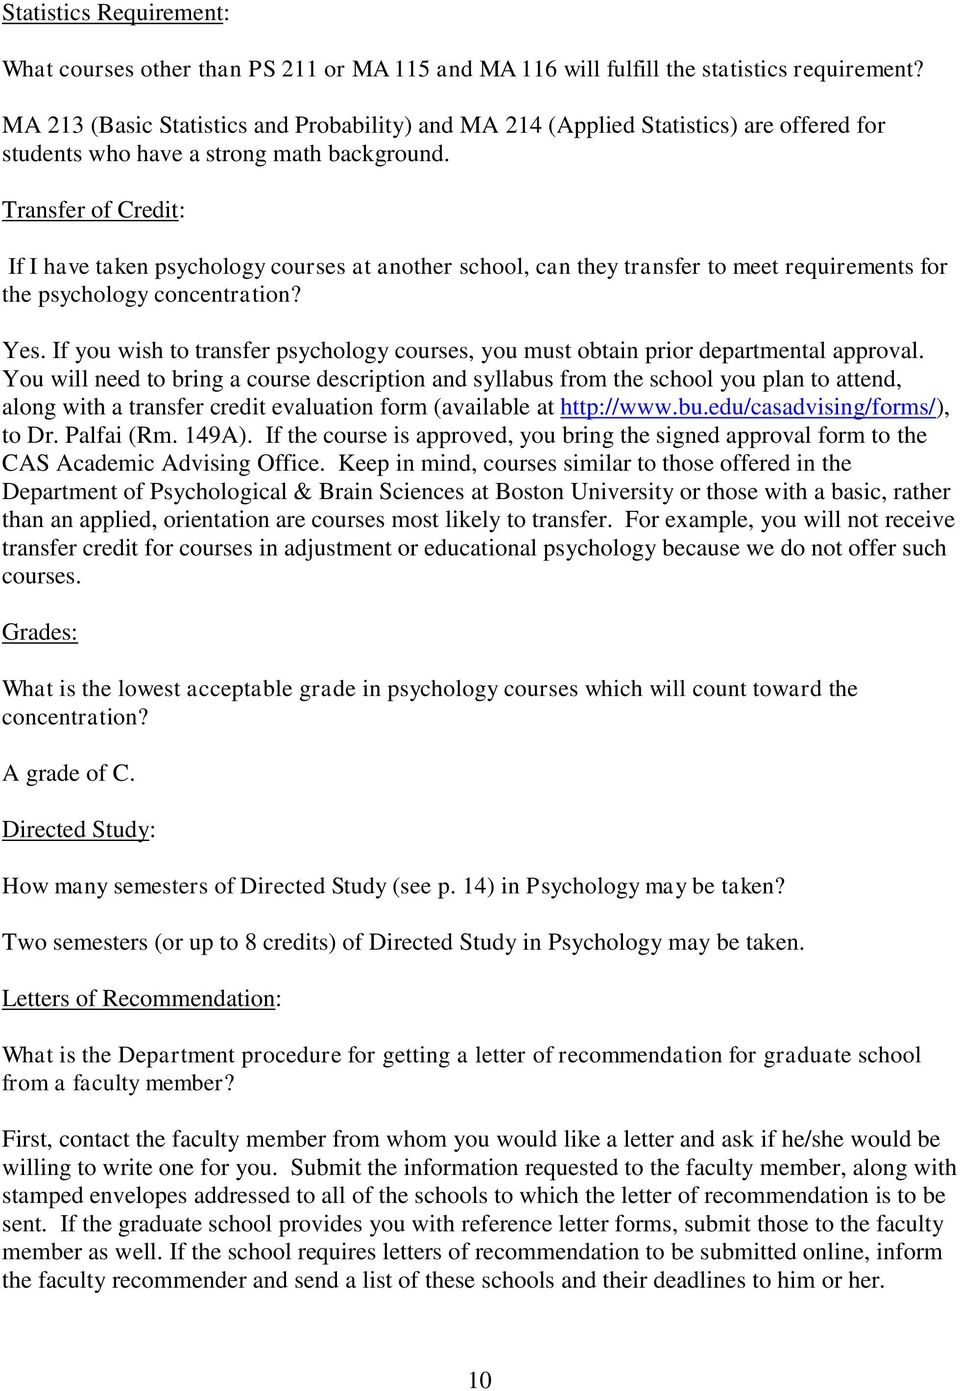 Transfer of Credit: If I have taken psychology courses at another school, can they transfer to meet requirements for the psychology concentration? Yes.